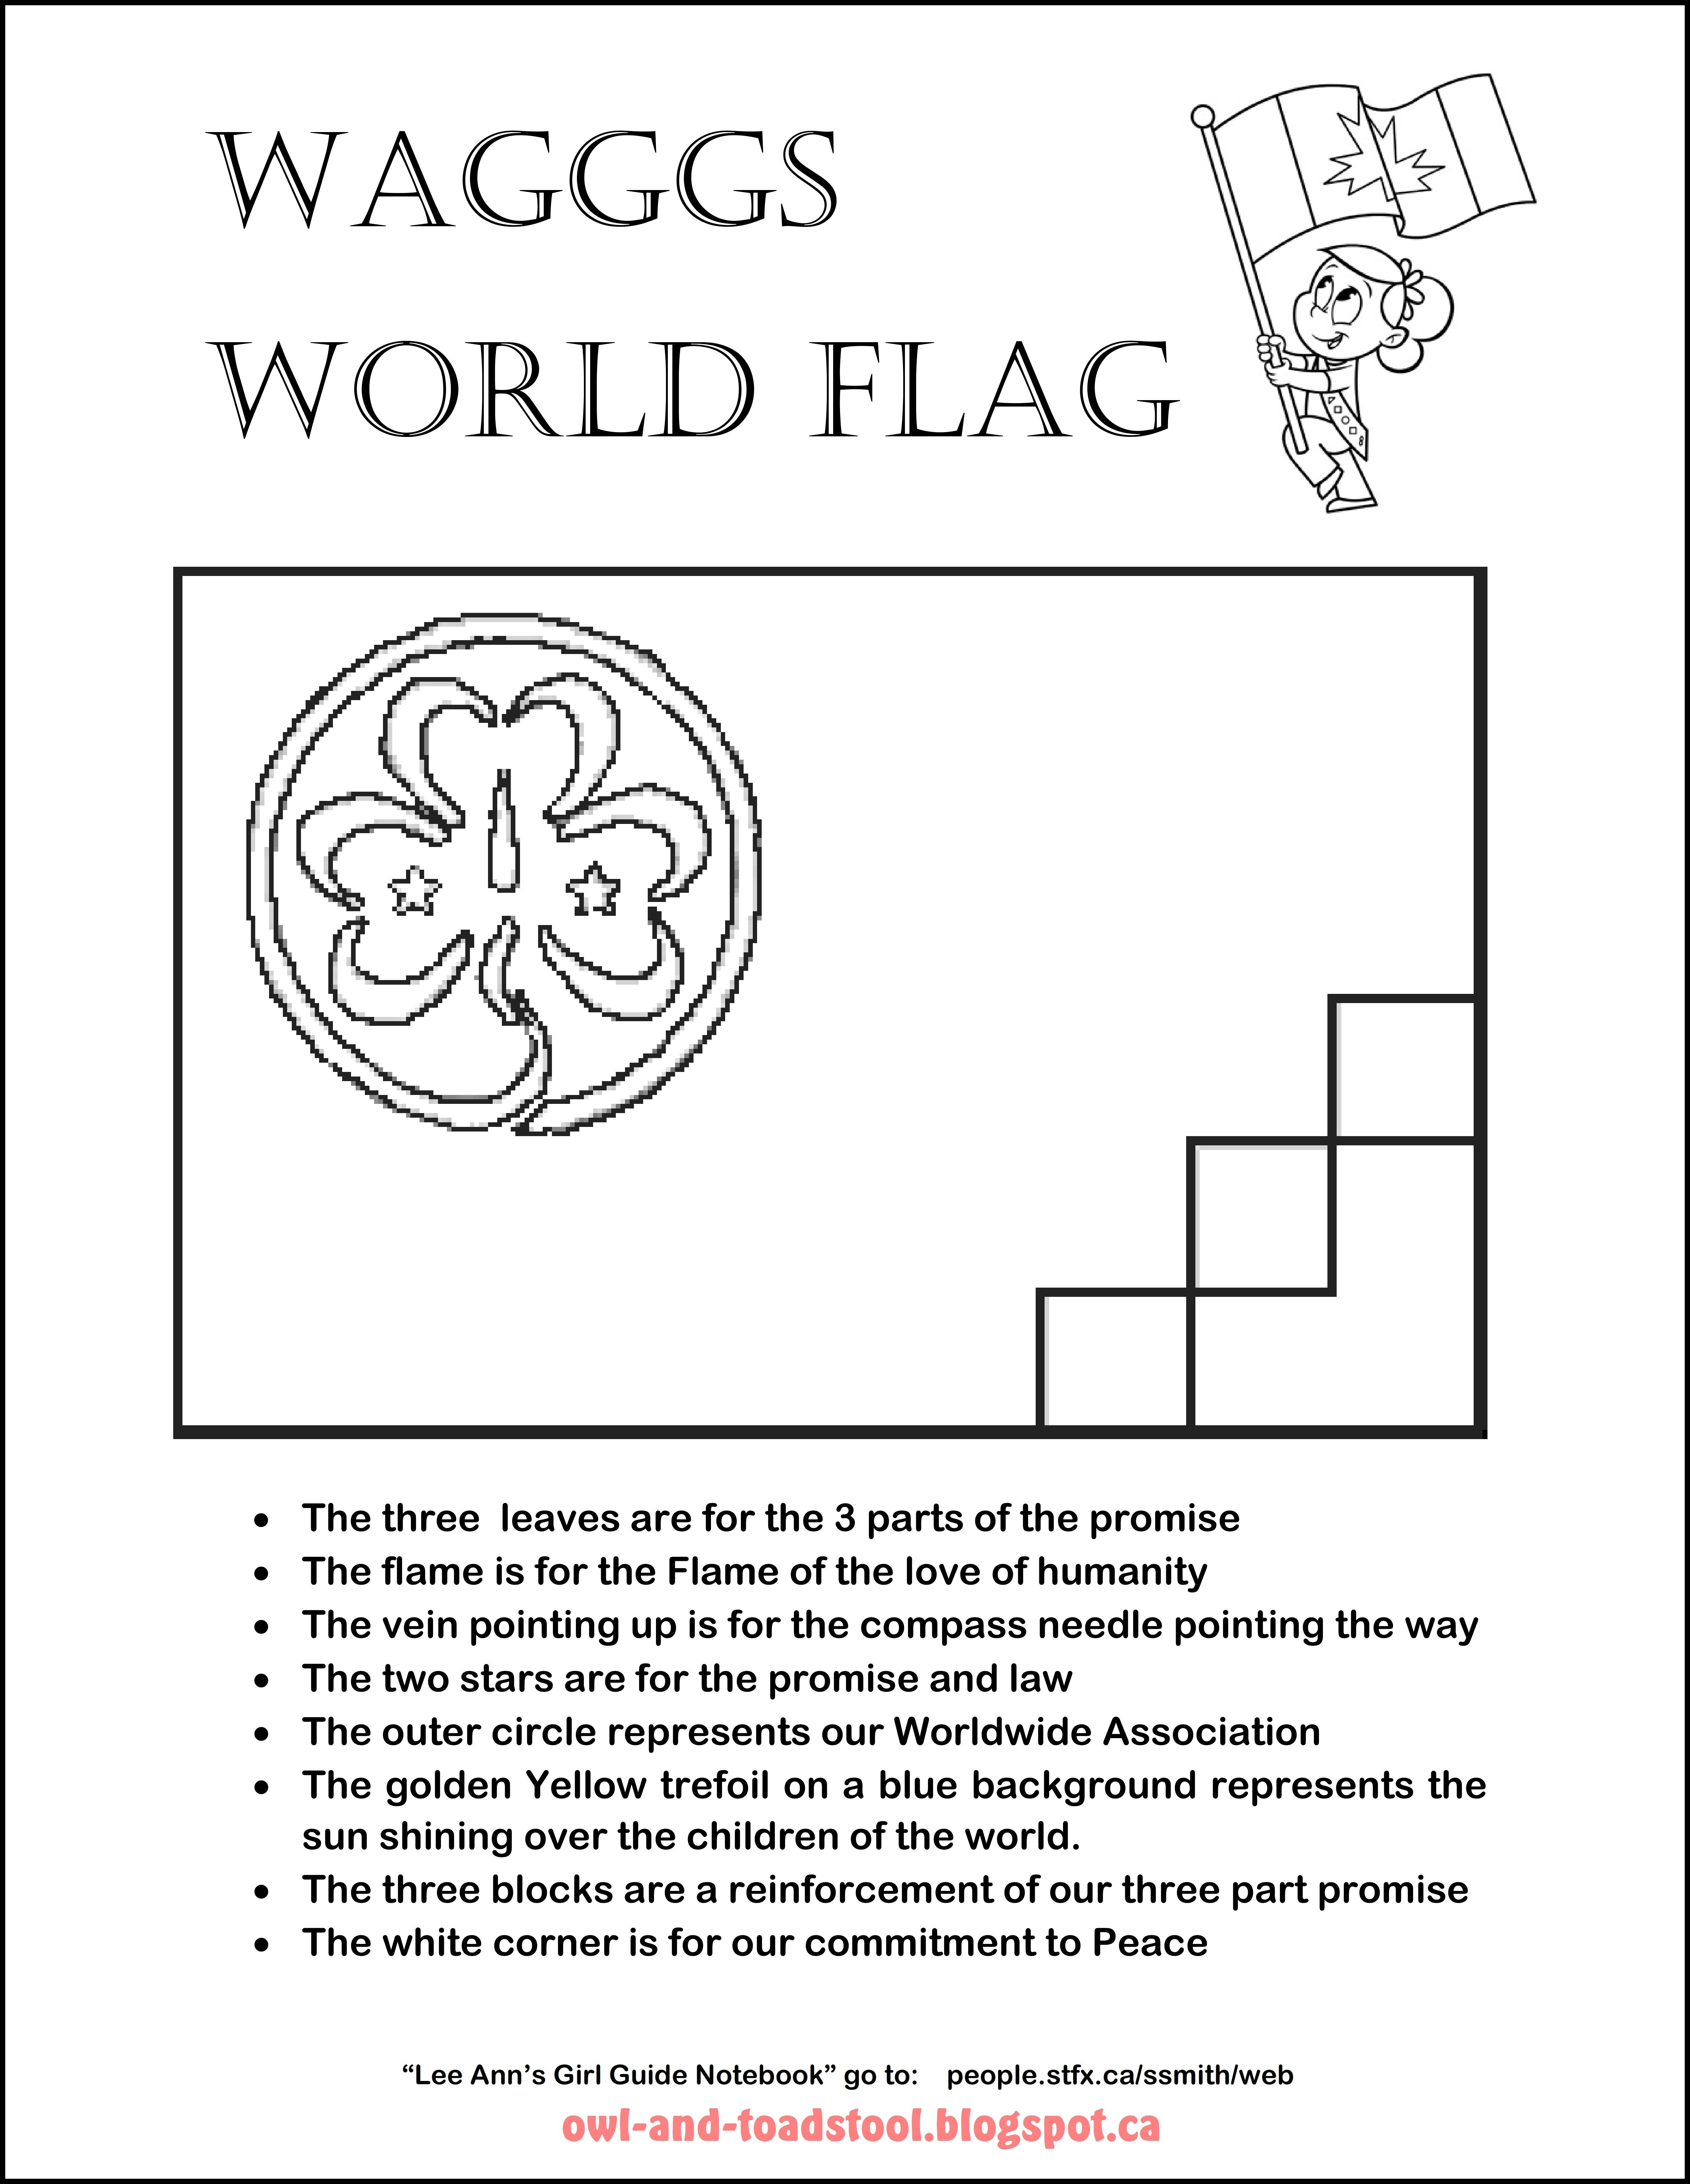 Wagggs World Flag Colouring Page Explains The Symbolism Of The